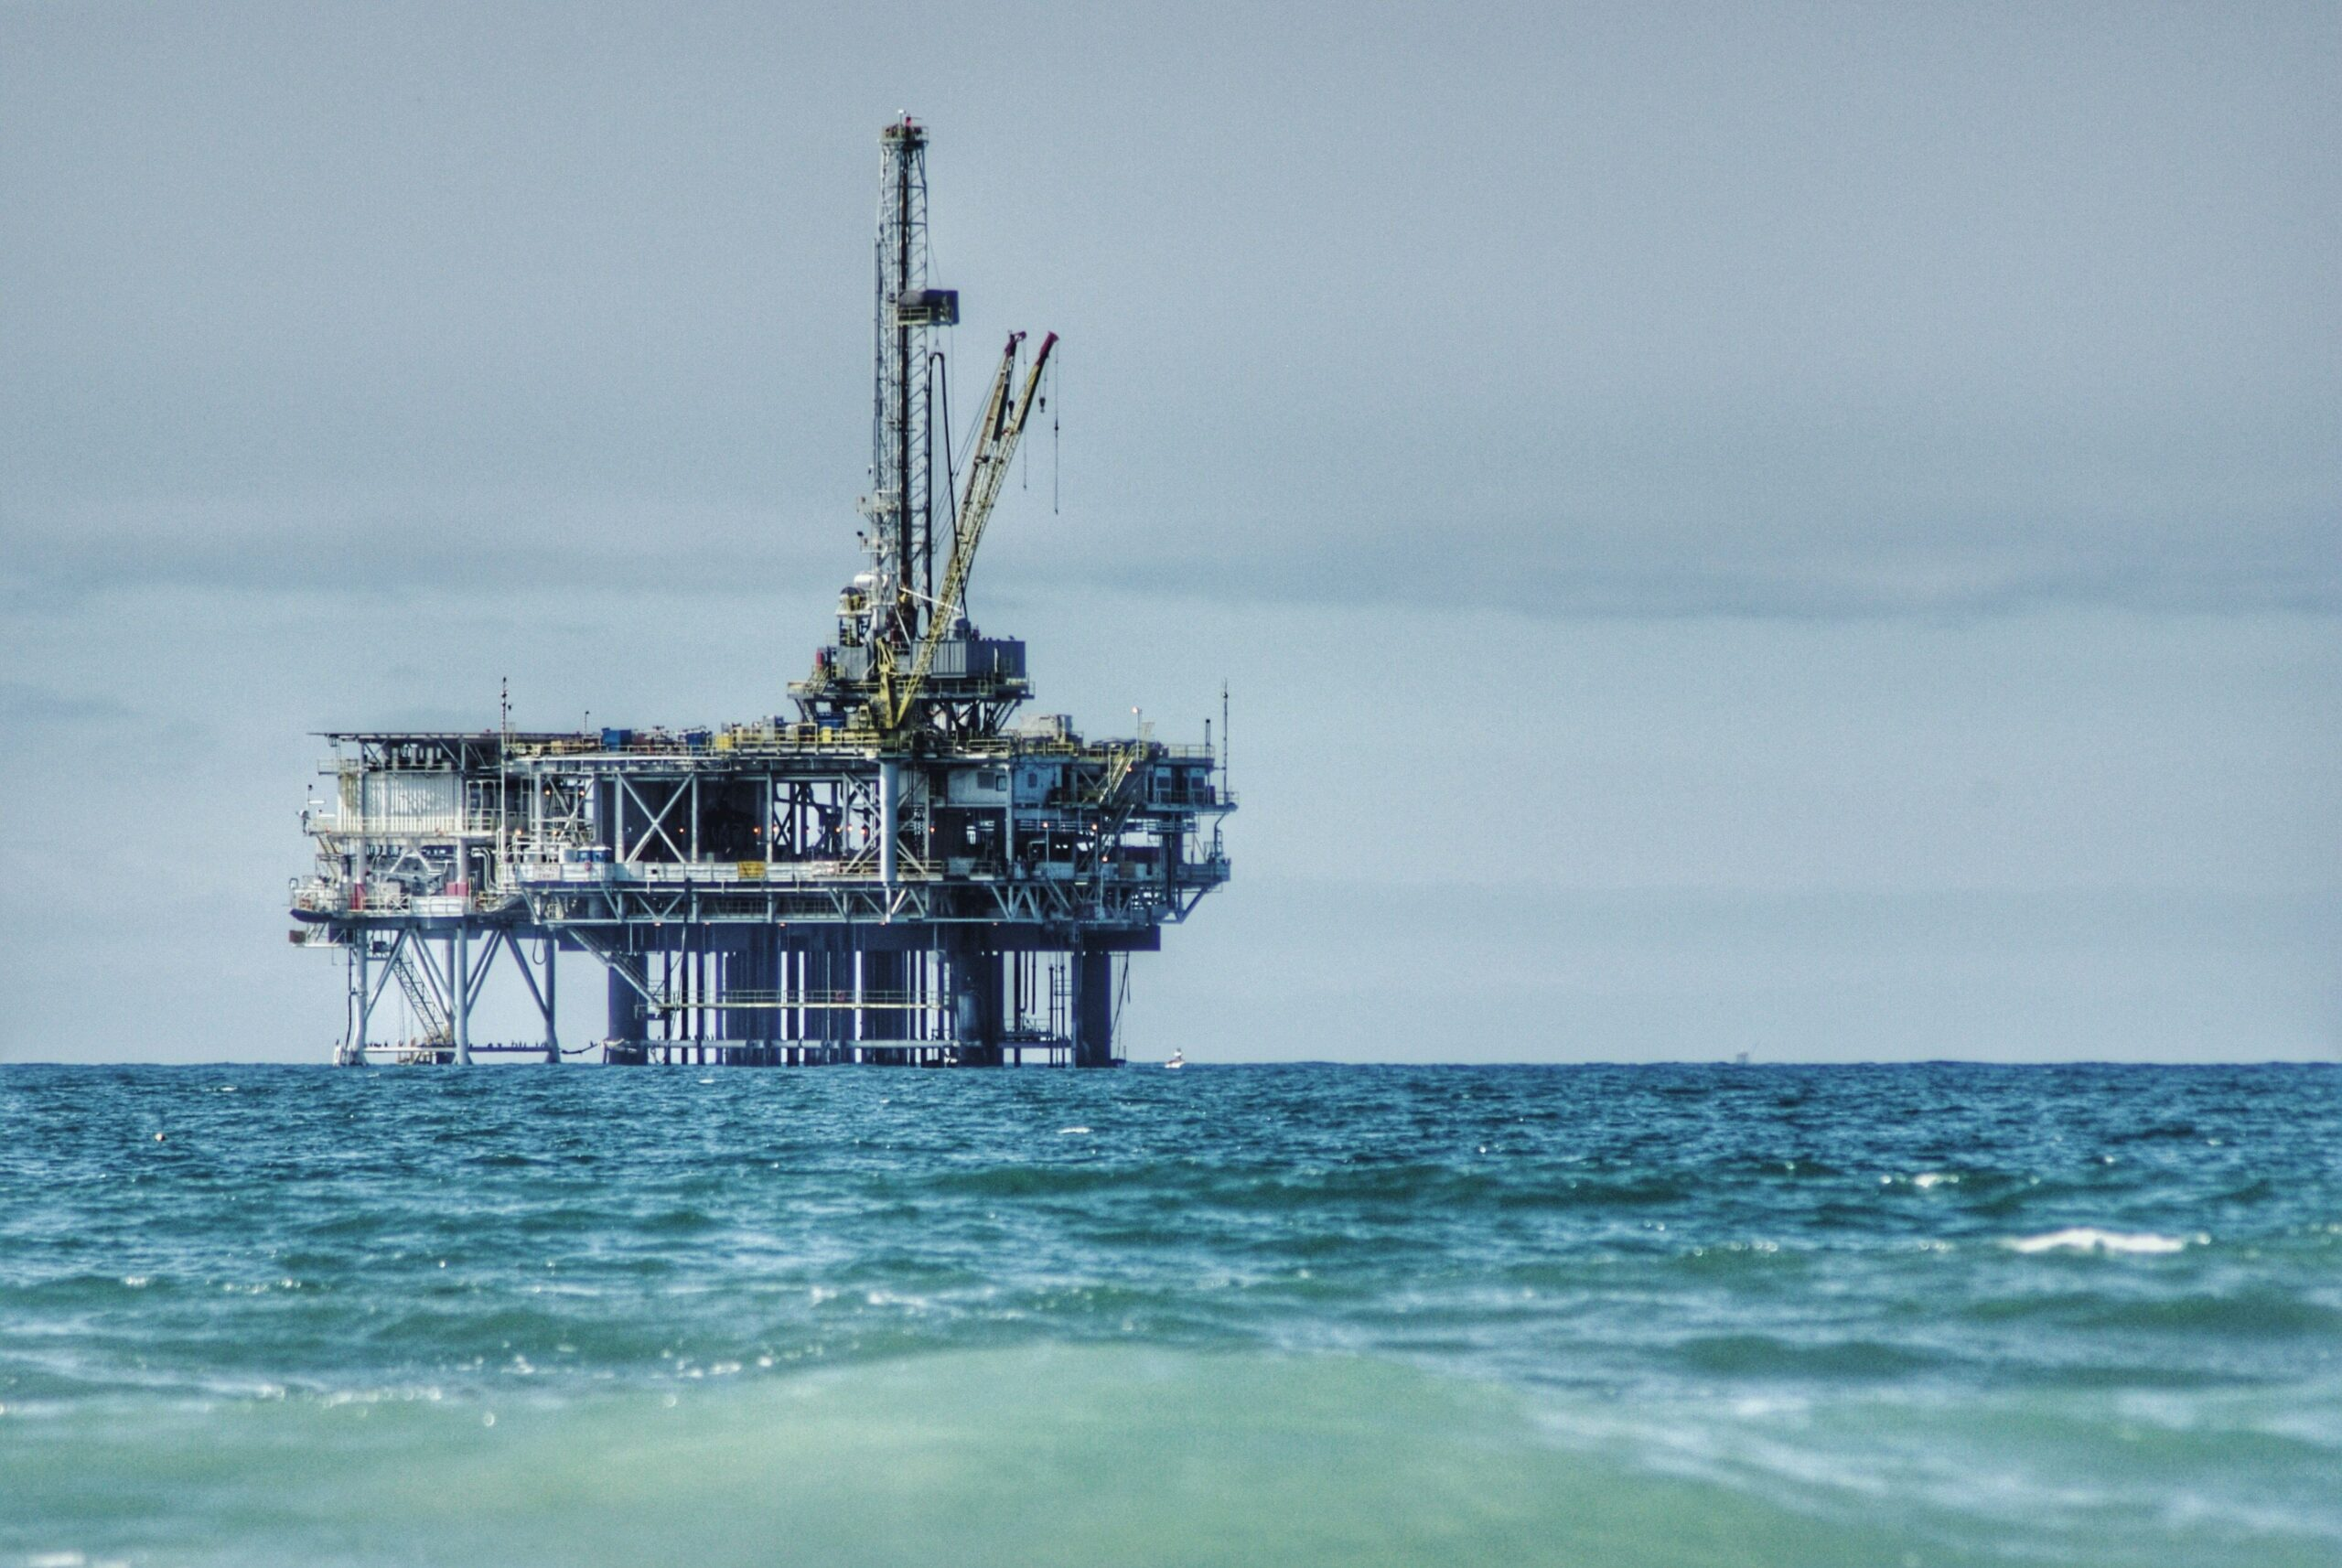 Oil & Gas inspection software